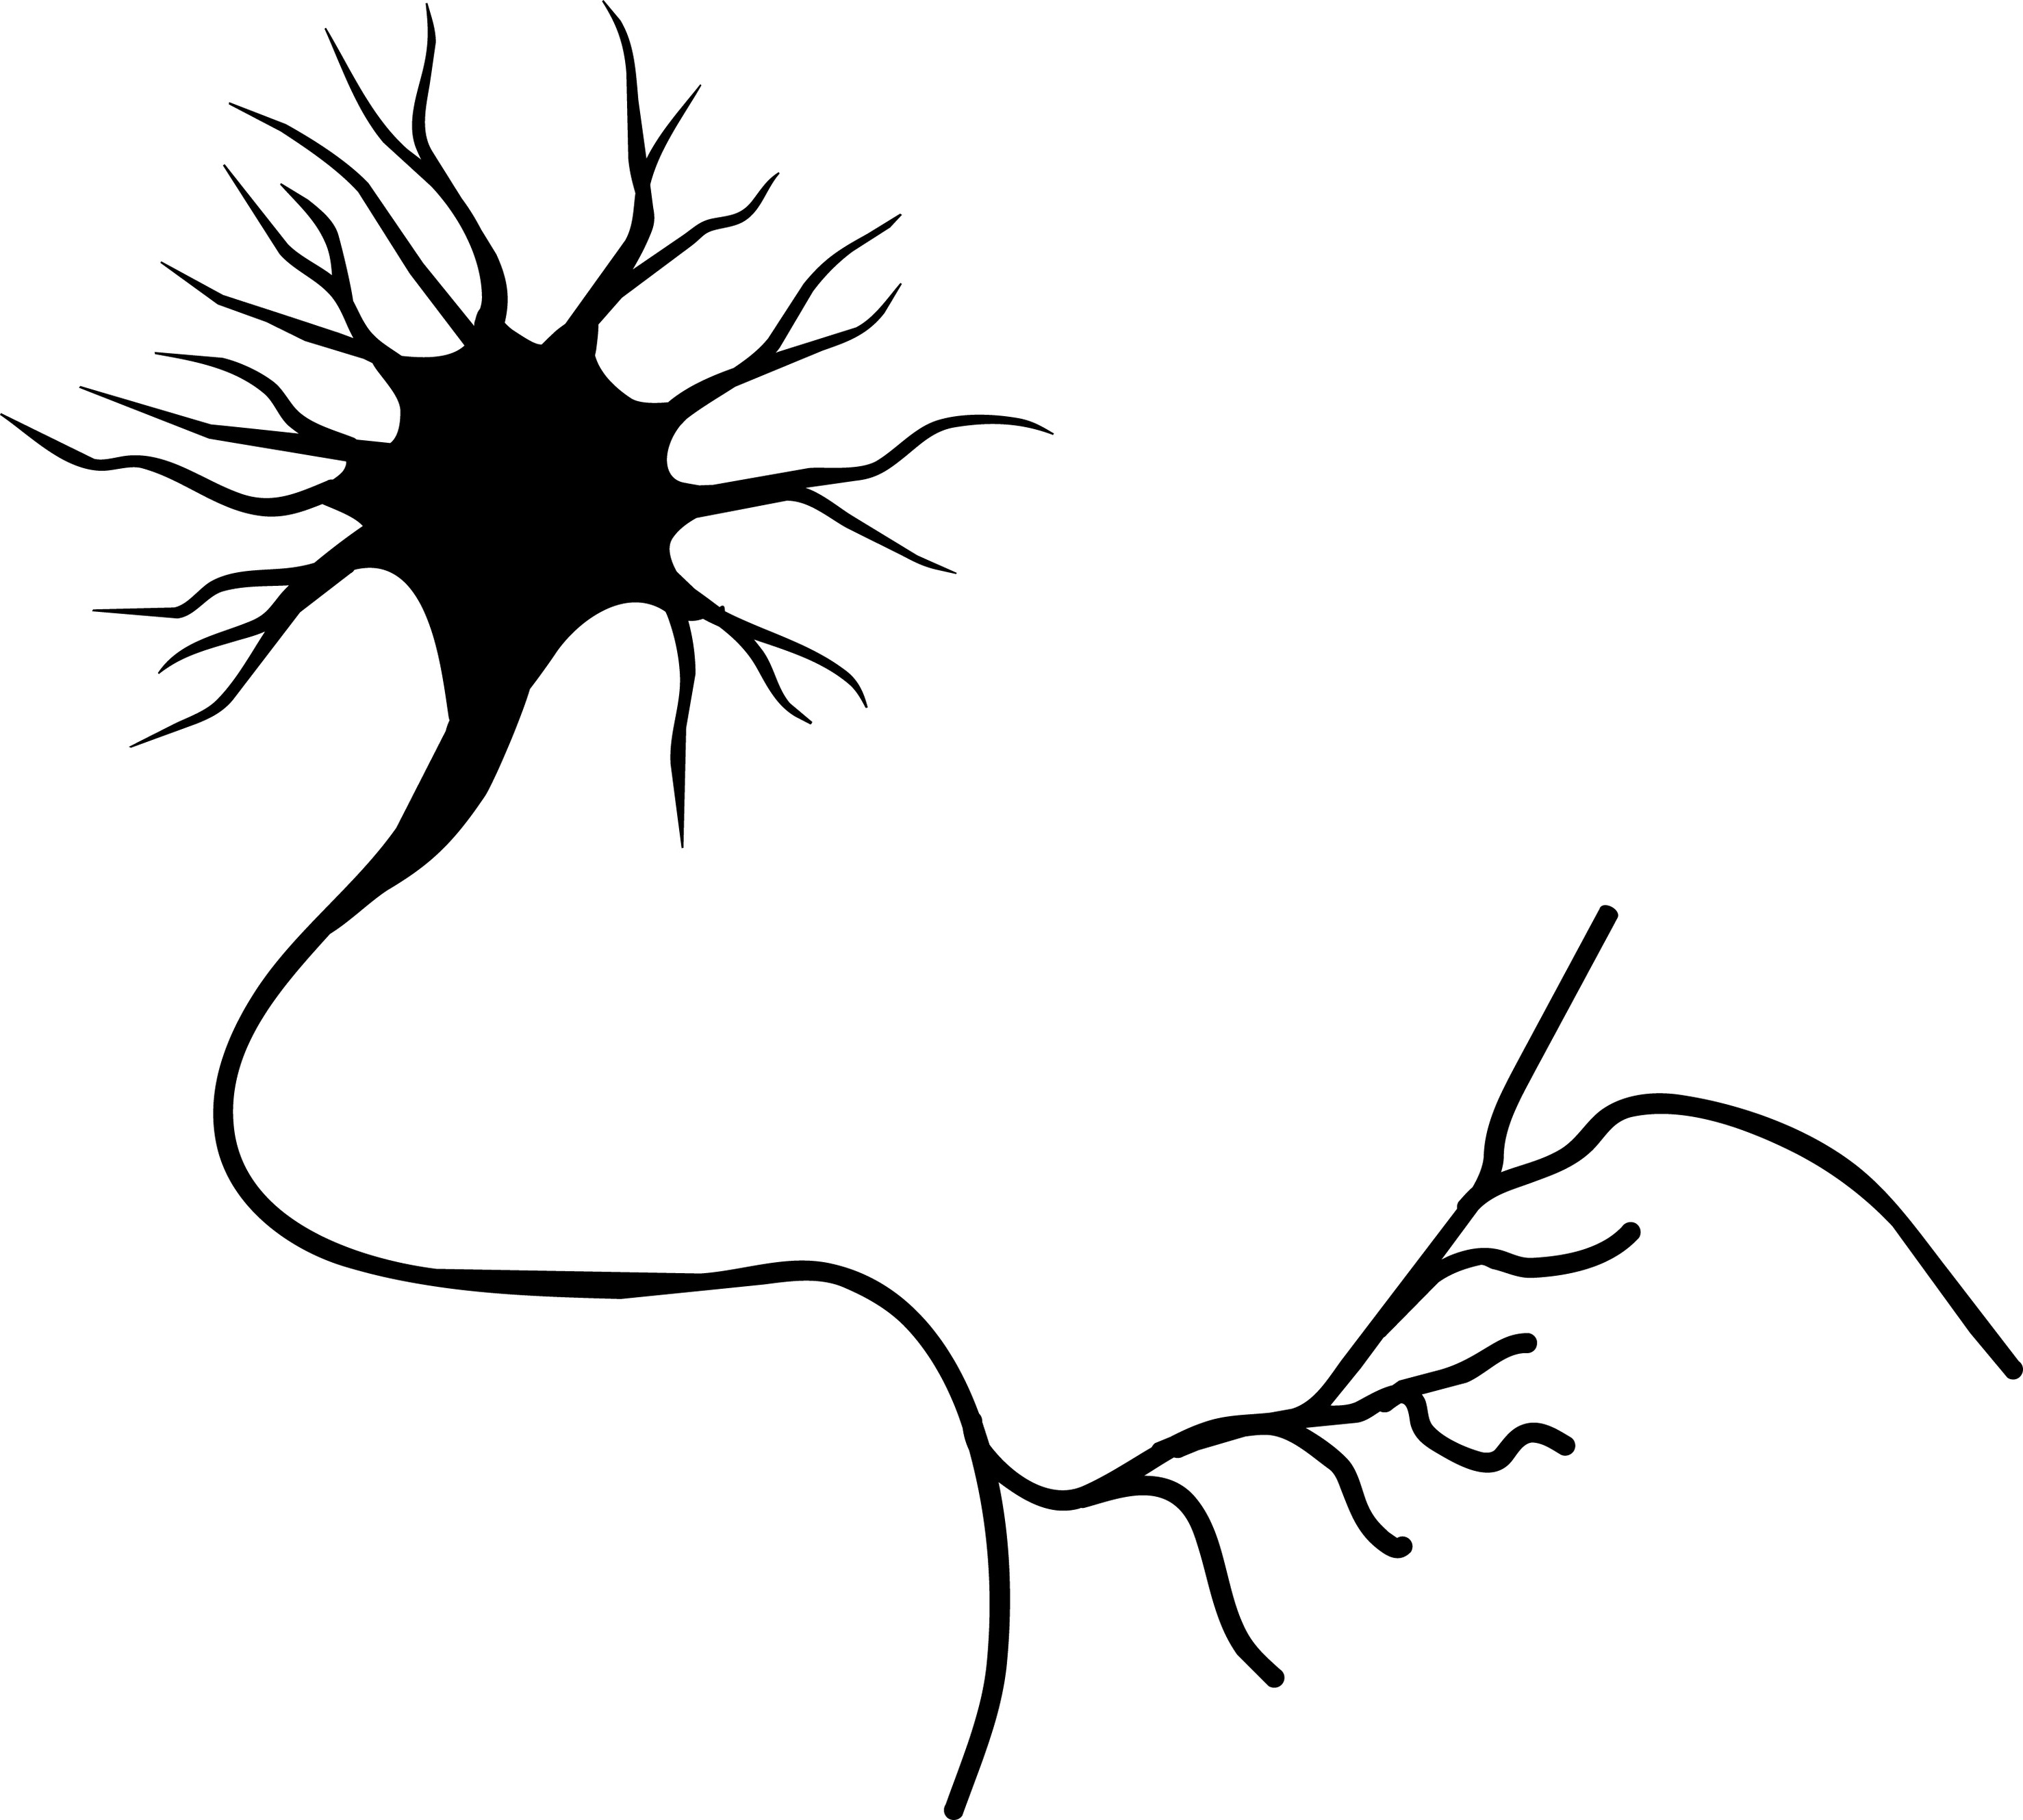 Neuron With Axon Clip Art Vector Online Royalty Free Clipart.